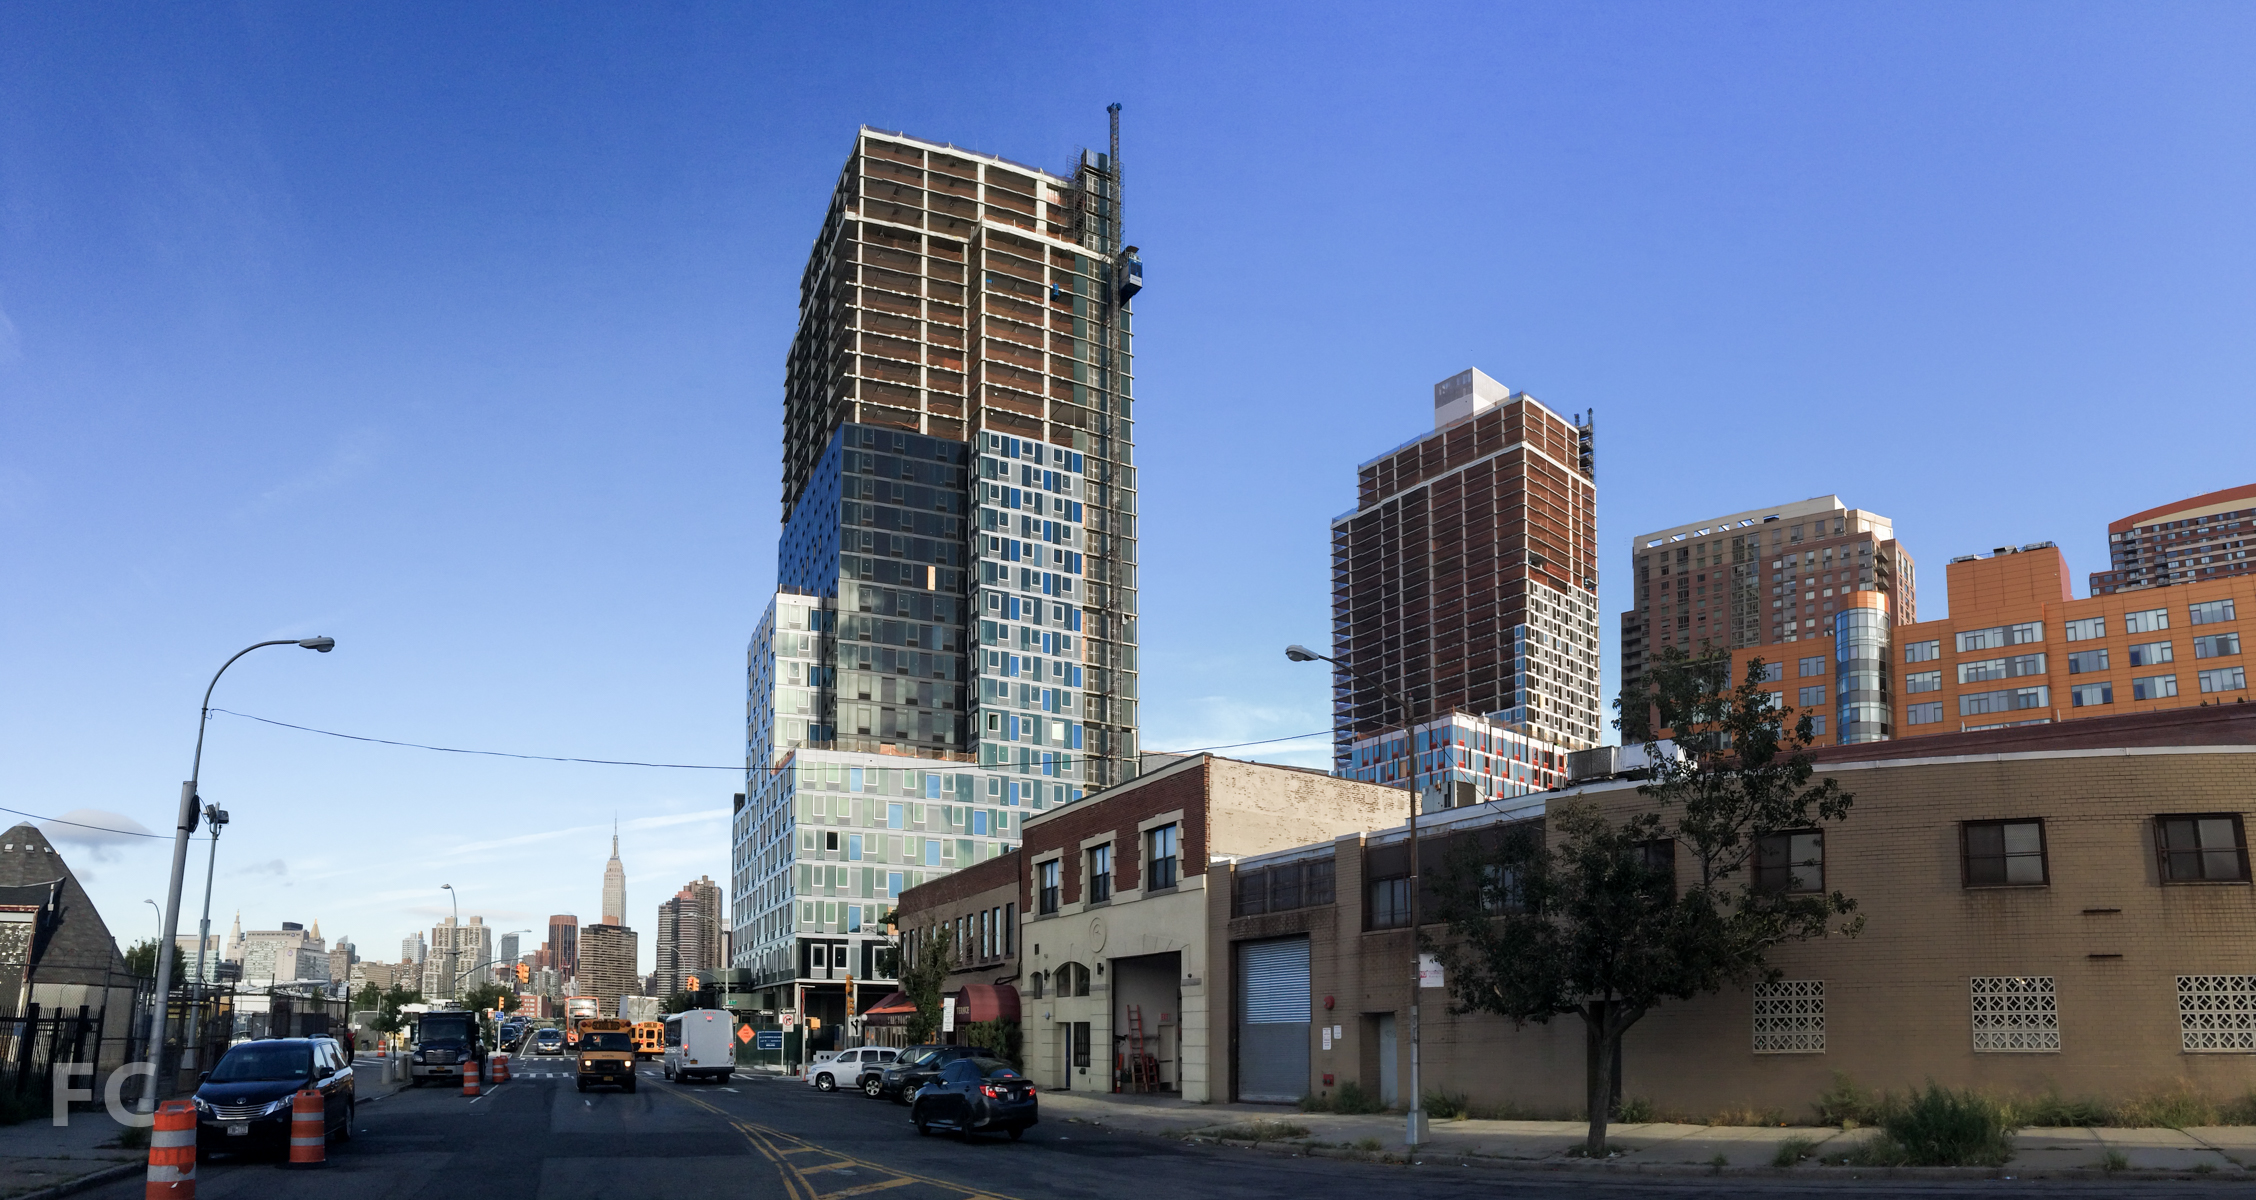 The east façade of Building A (right) and Building B (left) from Borden Avenue.